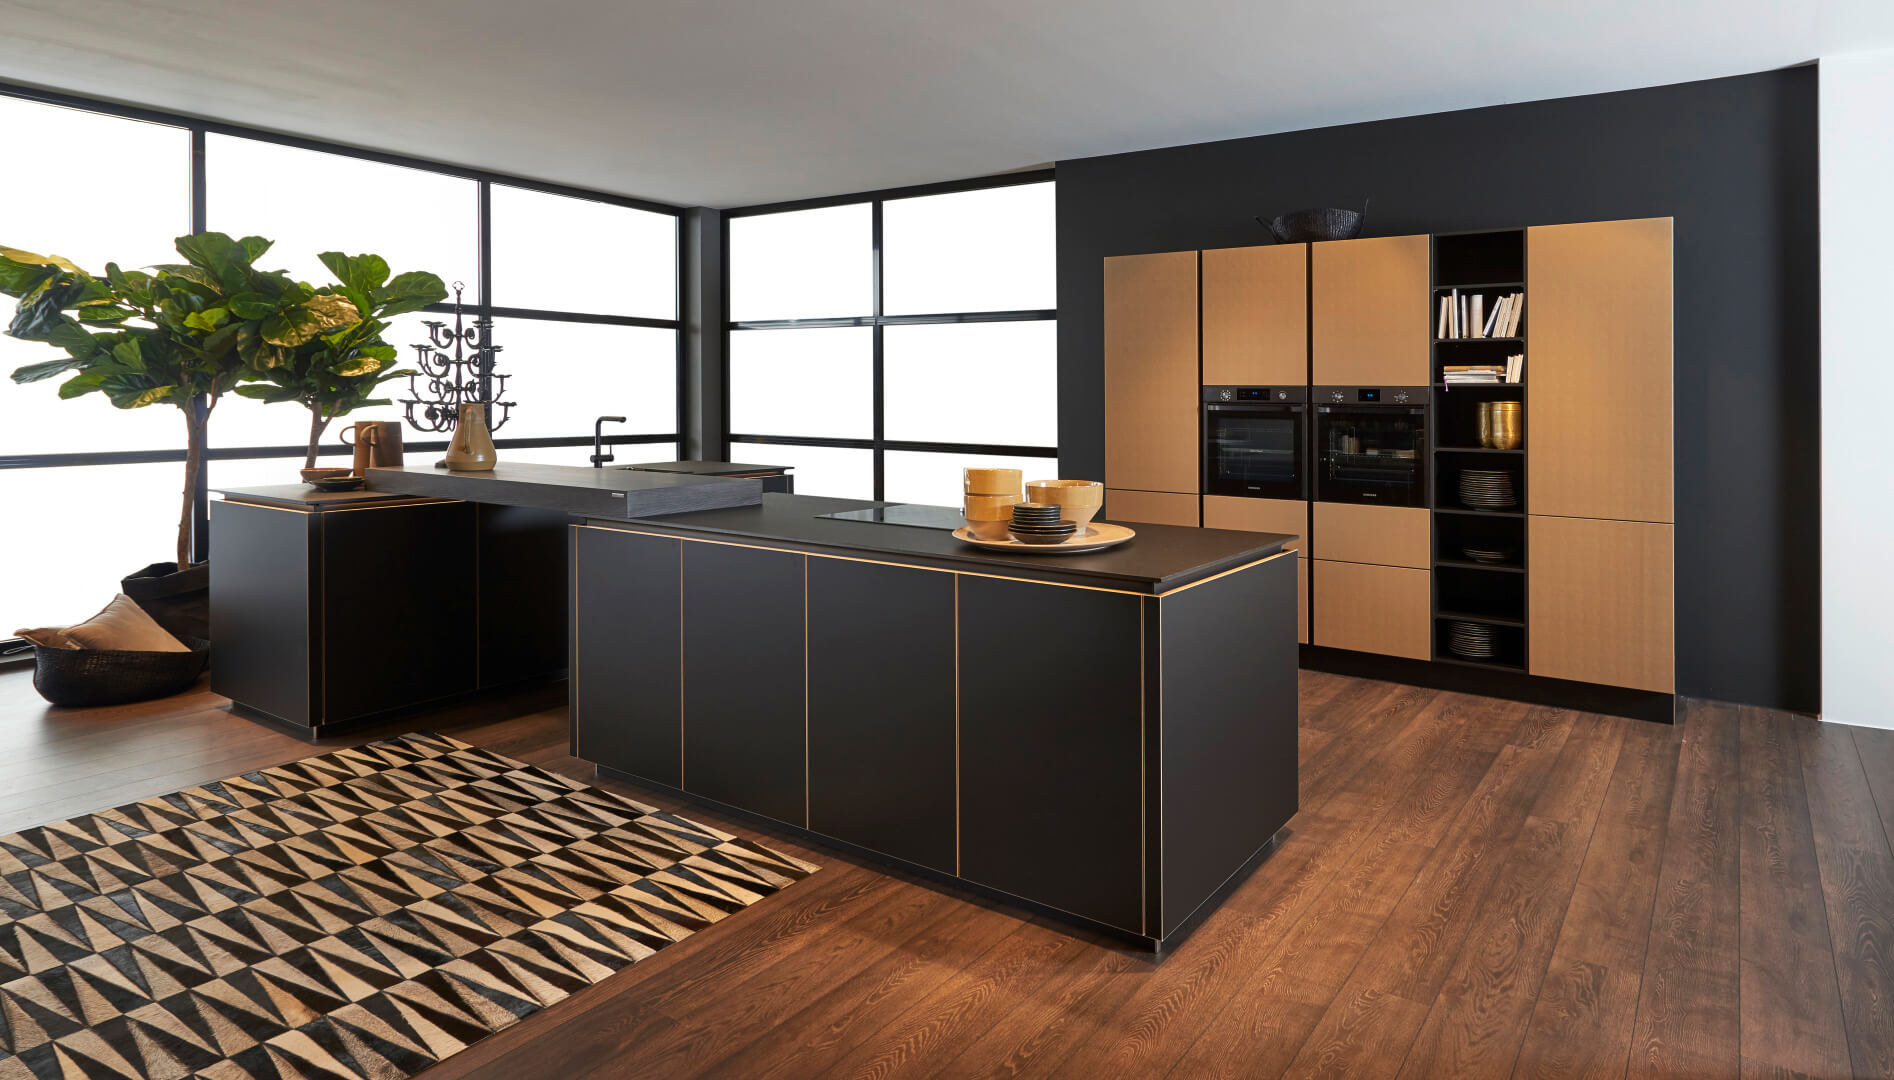 Nolte-Kitchens-Flair-Gallery4